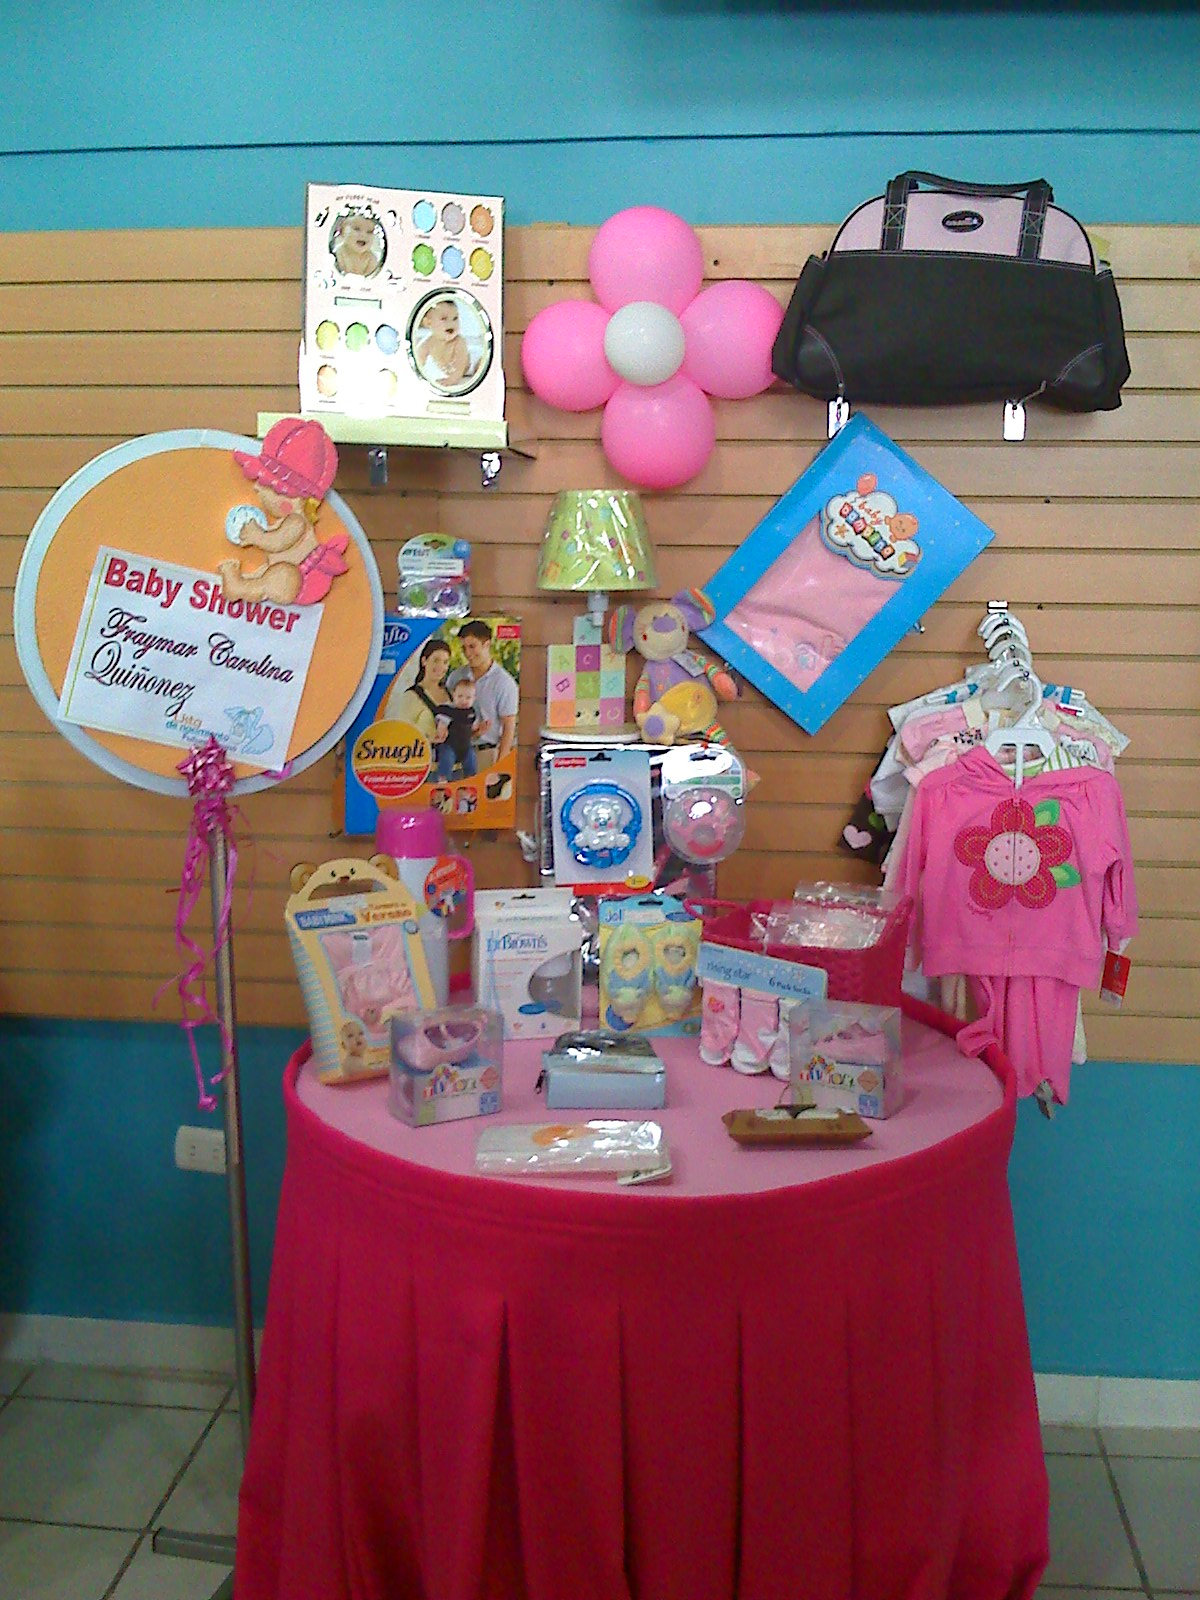 Baby shower como decorar un estuche de toallitas humedas for Novedades para baby shower